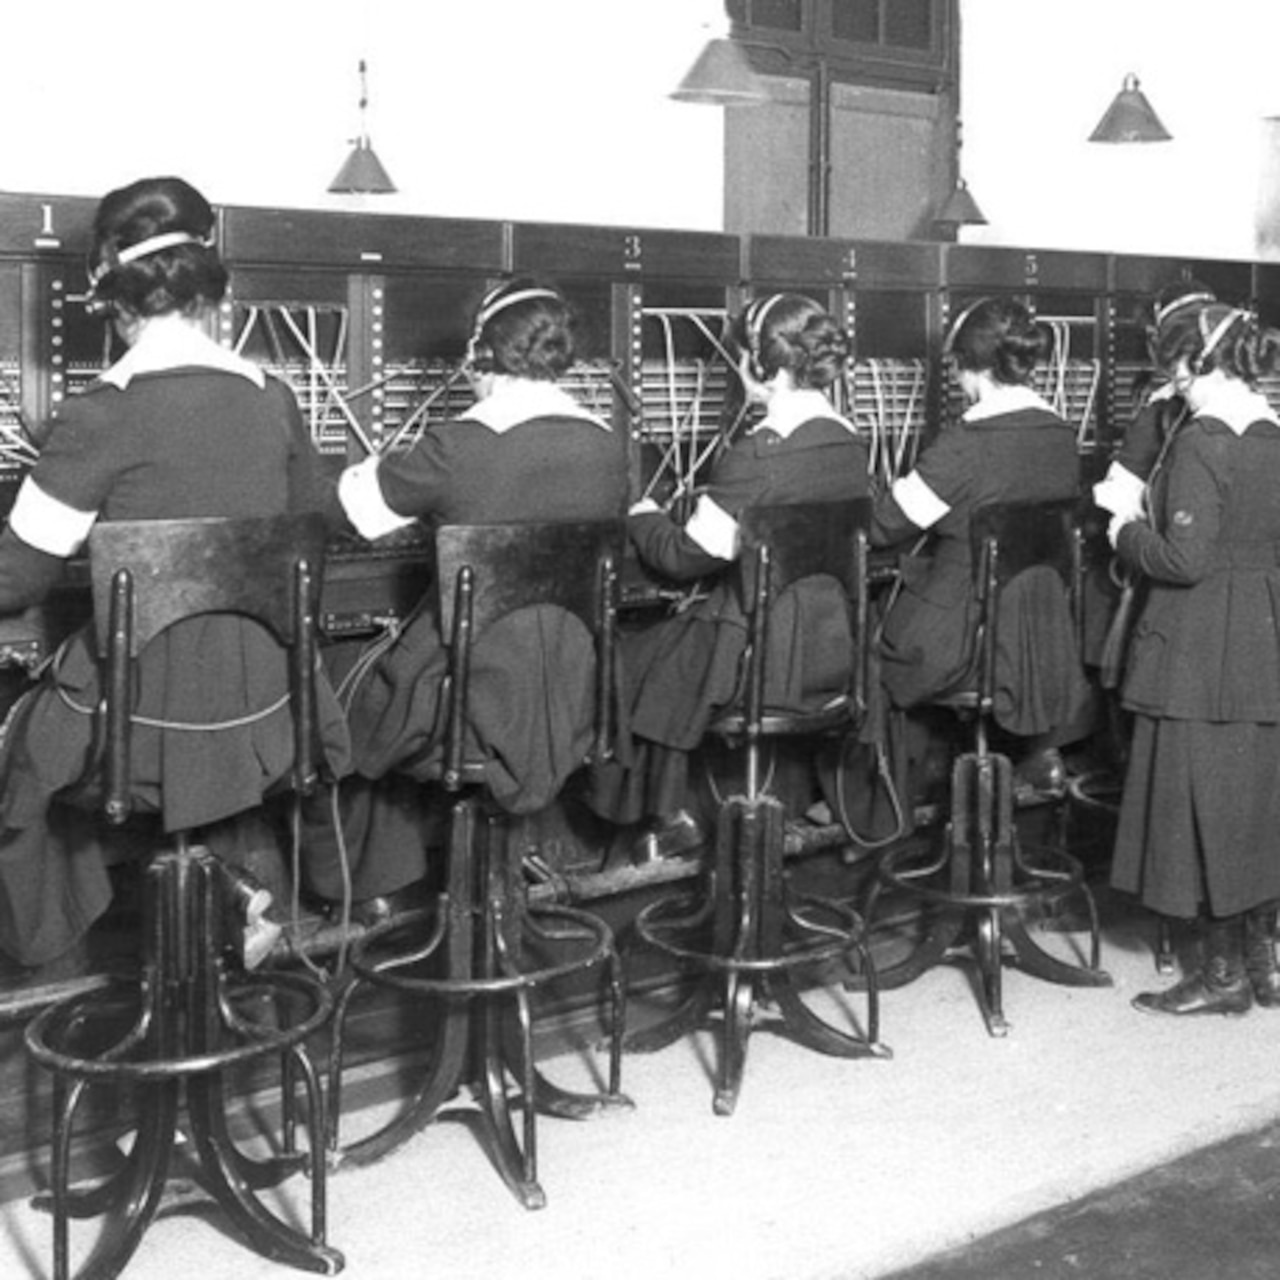 Women sit in a row and work at a telephone switchboard.